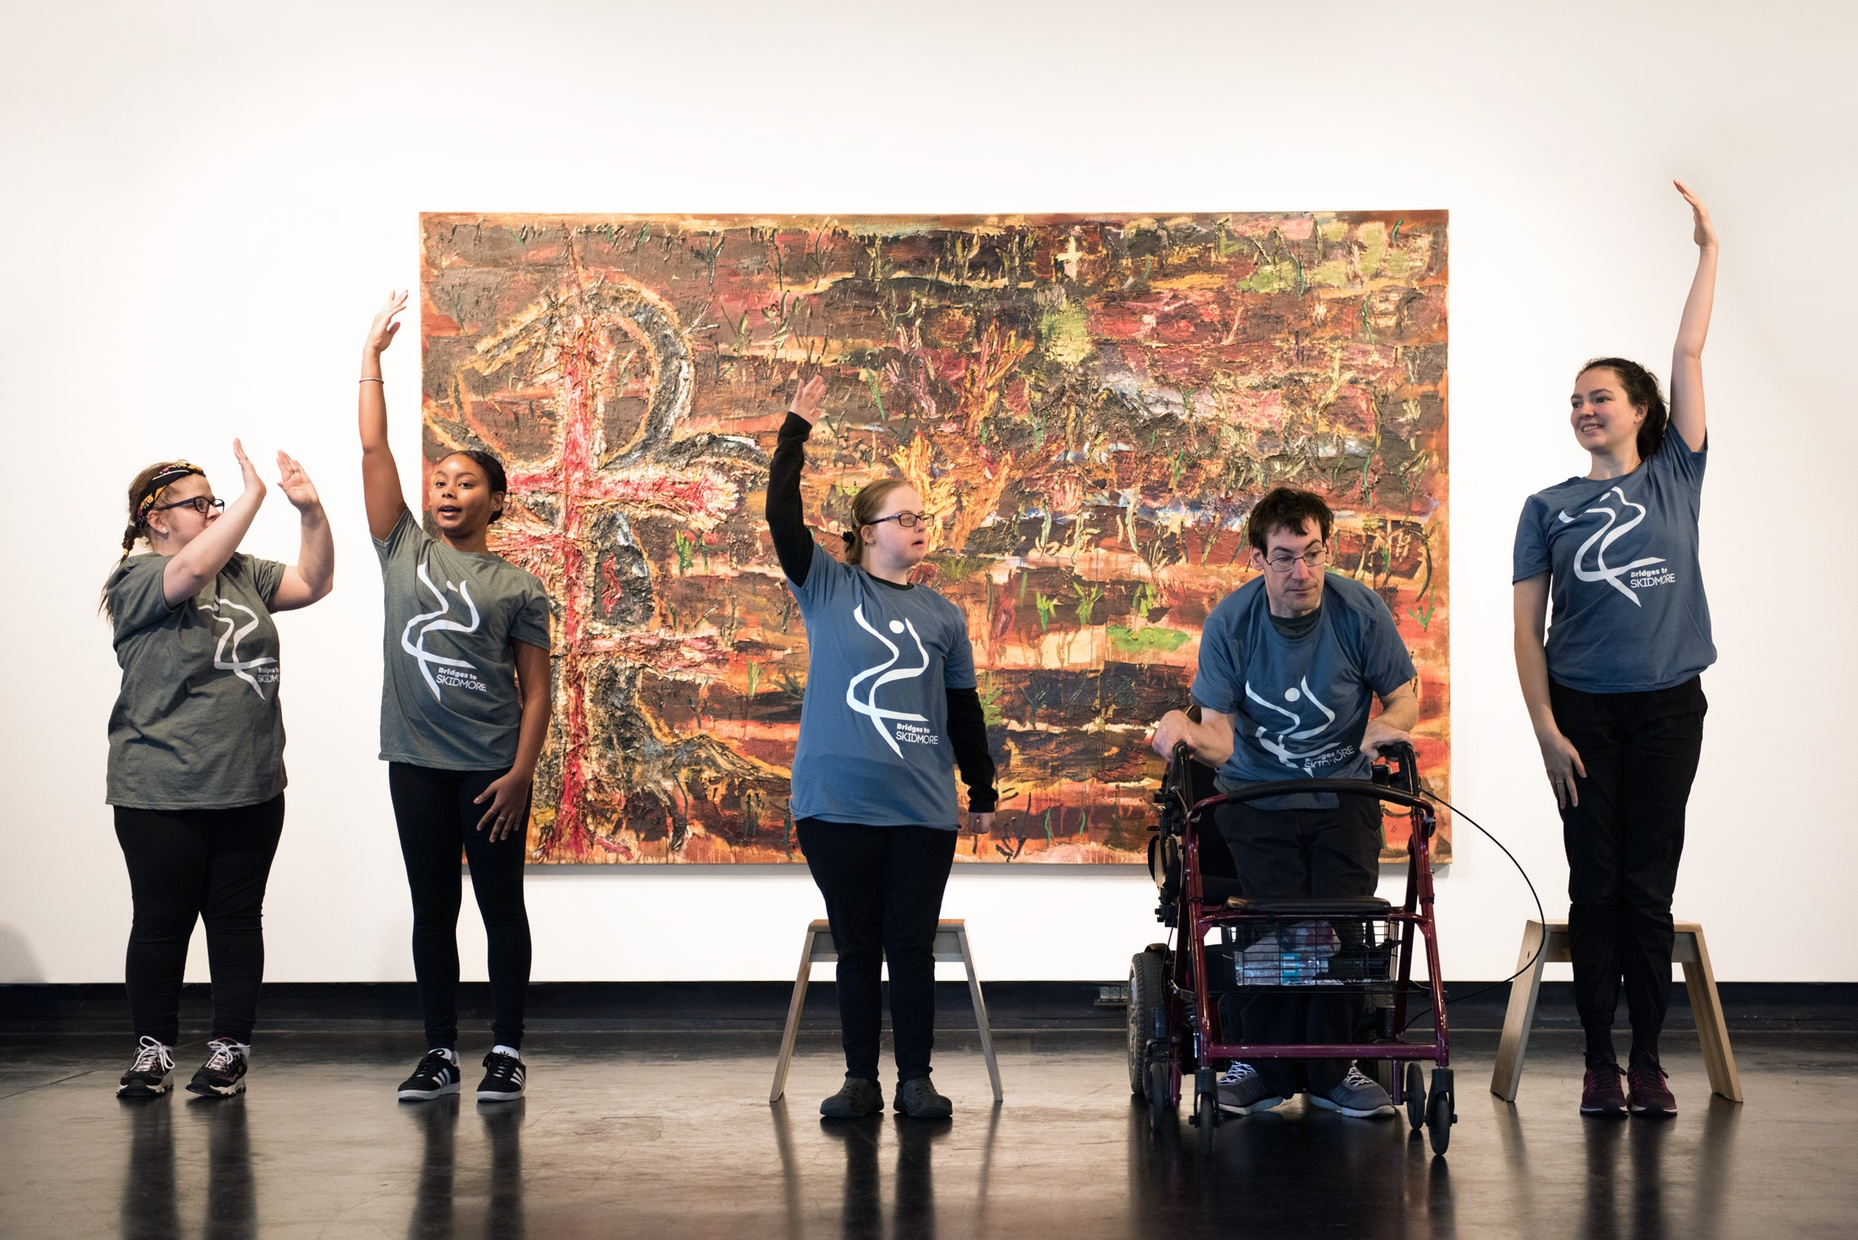 Five people pose with their arms raised in front of an abstract, earth-toned painting.